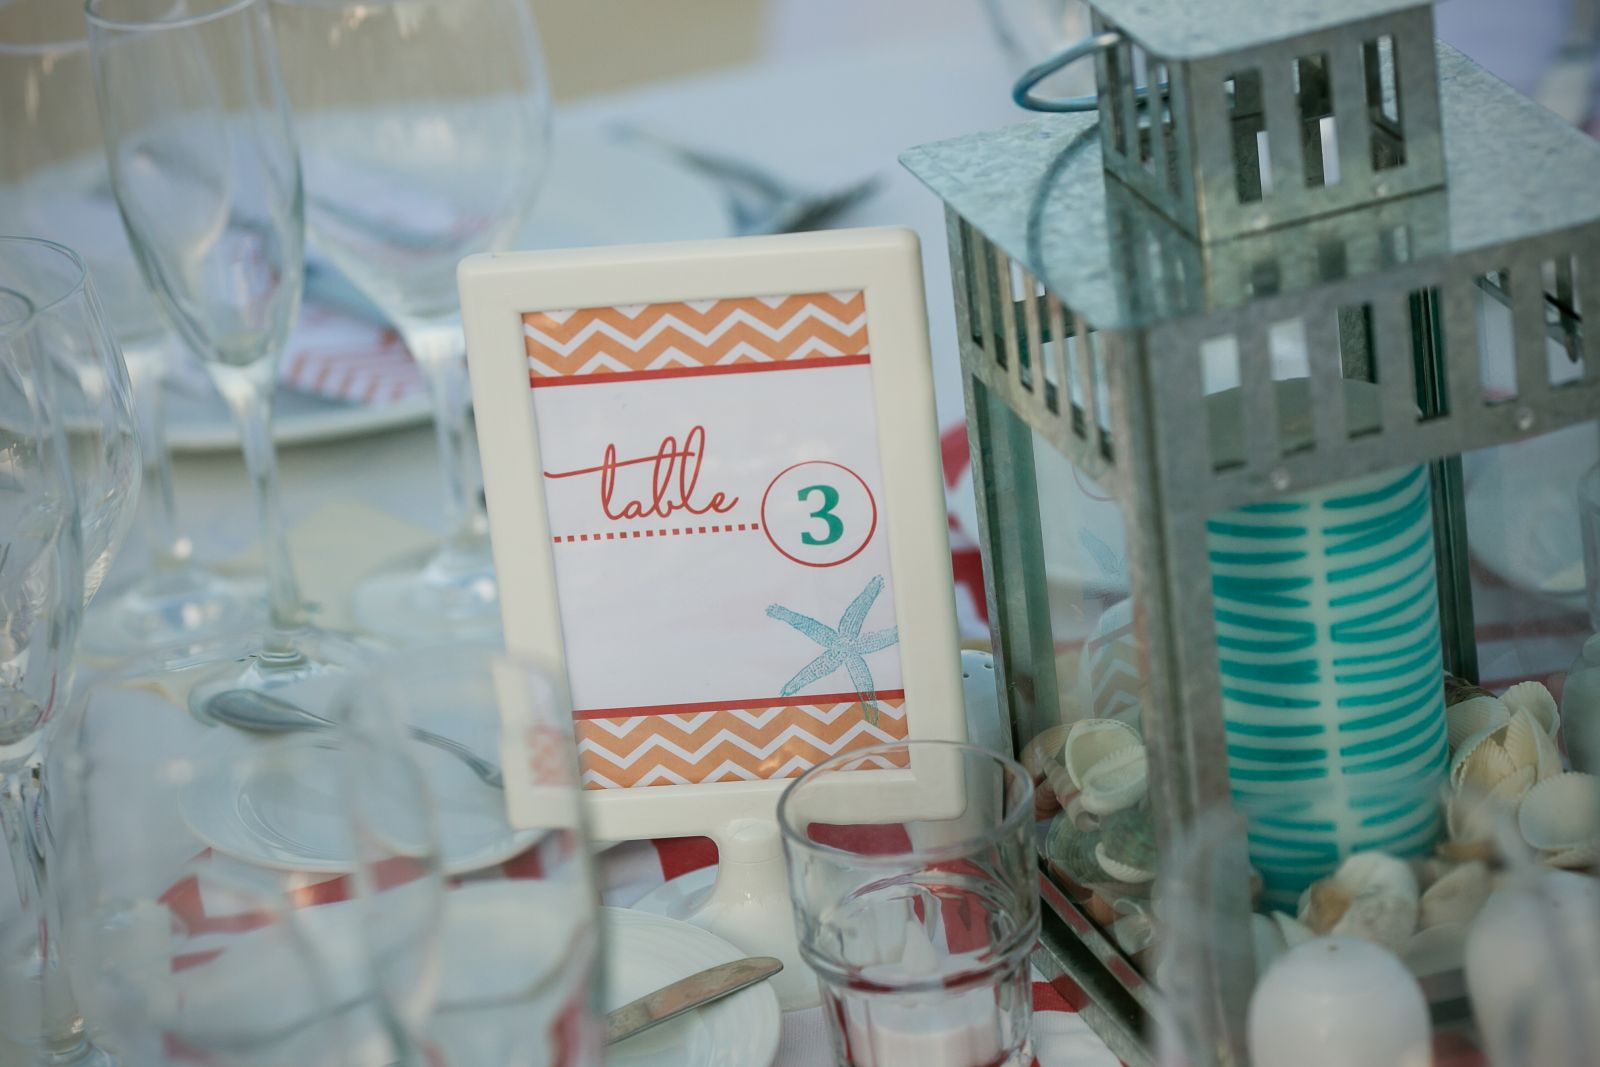 I designed the table numbers and then just printed in my home printer; then, put them in a .99 cent frame I got from IKEA (they were very easy to take with us and assemble on site!)  I also got the lanterns and candles from IKEA to create centerpieces.